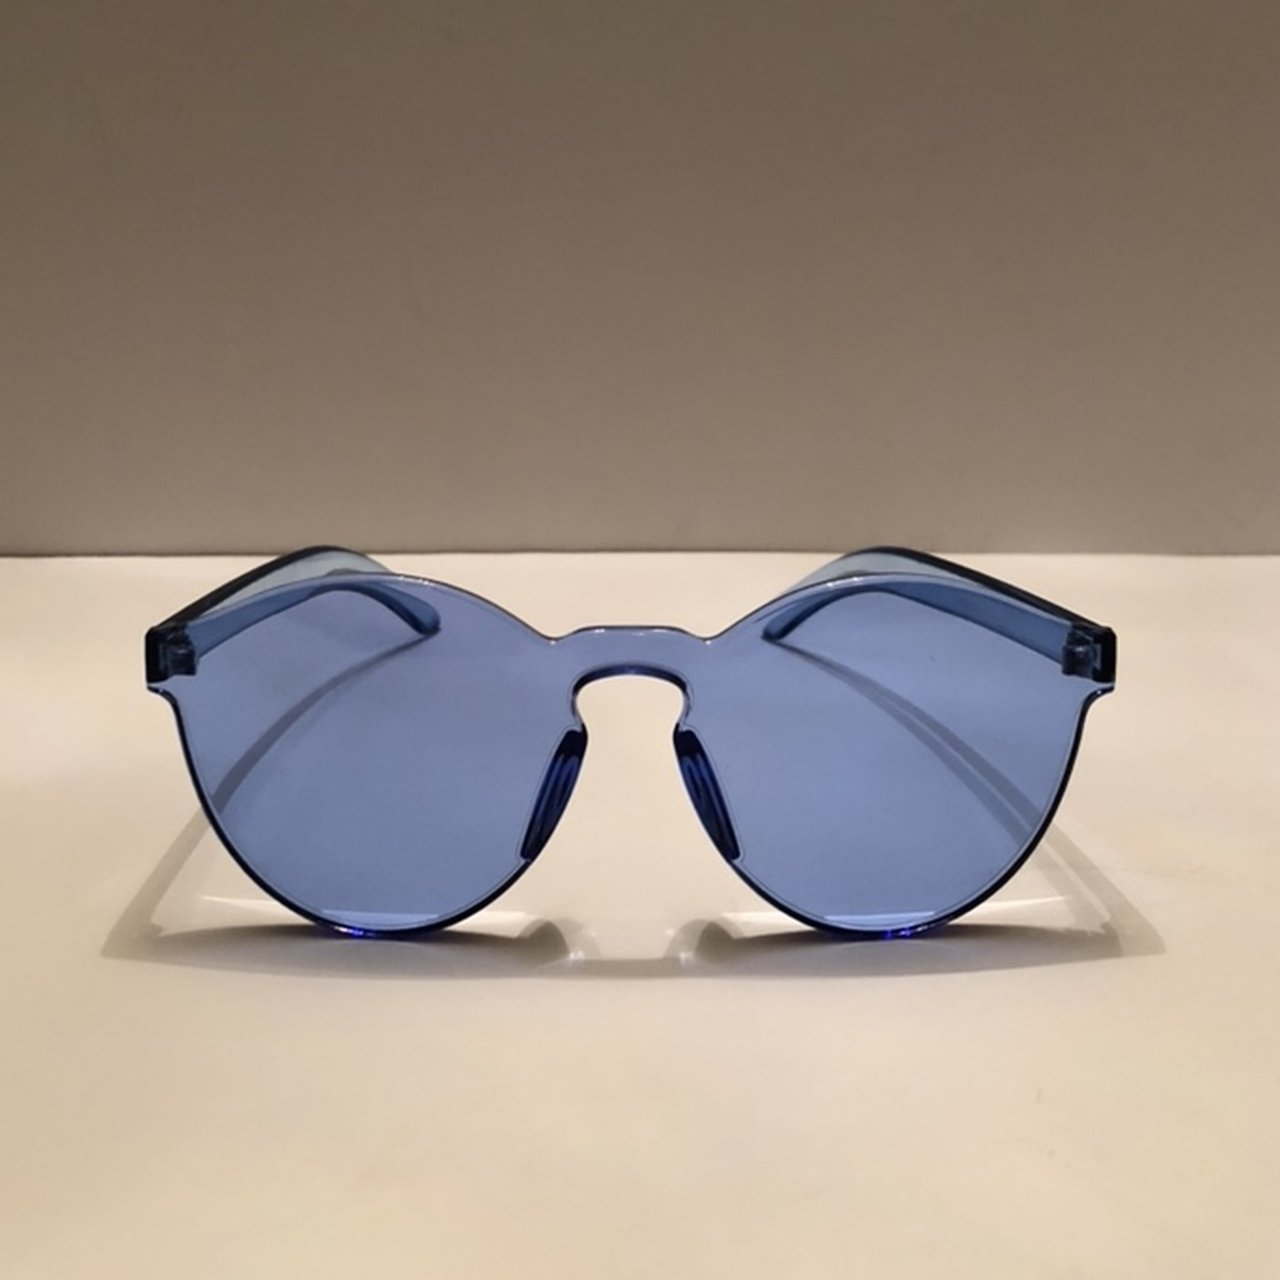 85e4dc20153 Candy cat eye blue sunglasses UVB protection  ~~FREE on 2 - Depop